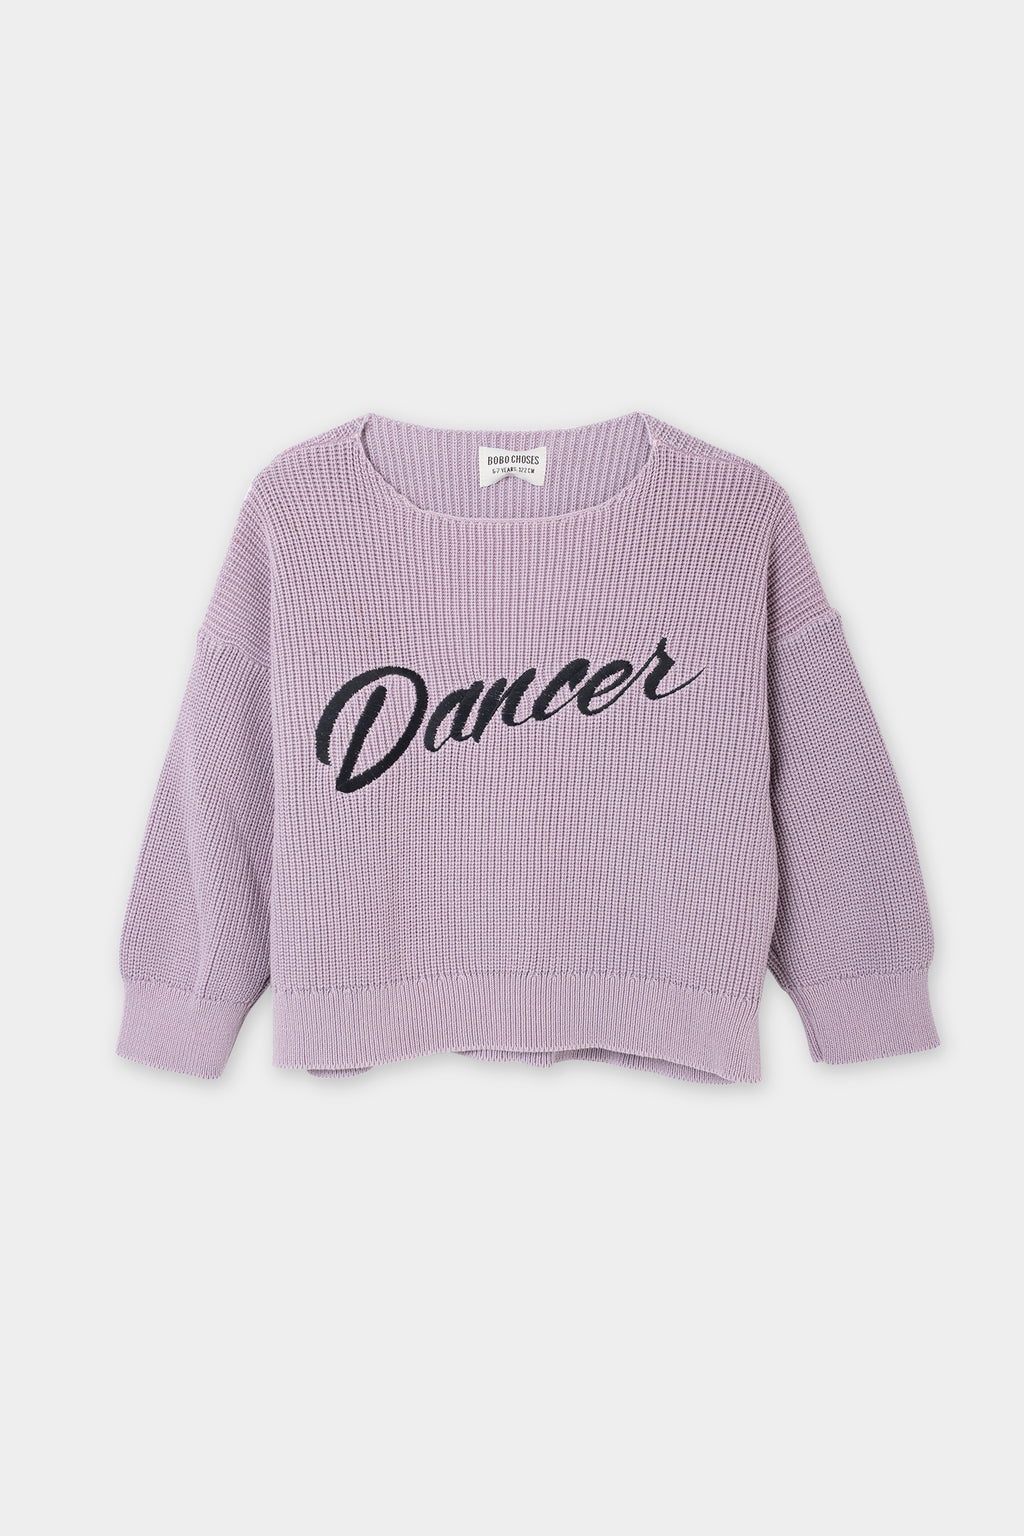 Bobo Choses Dancer Knitted Jumper